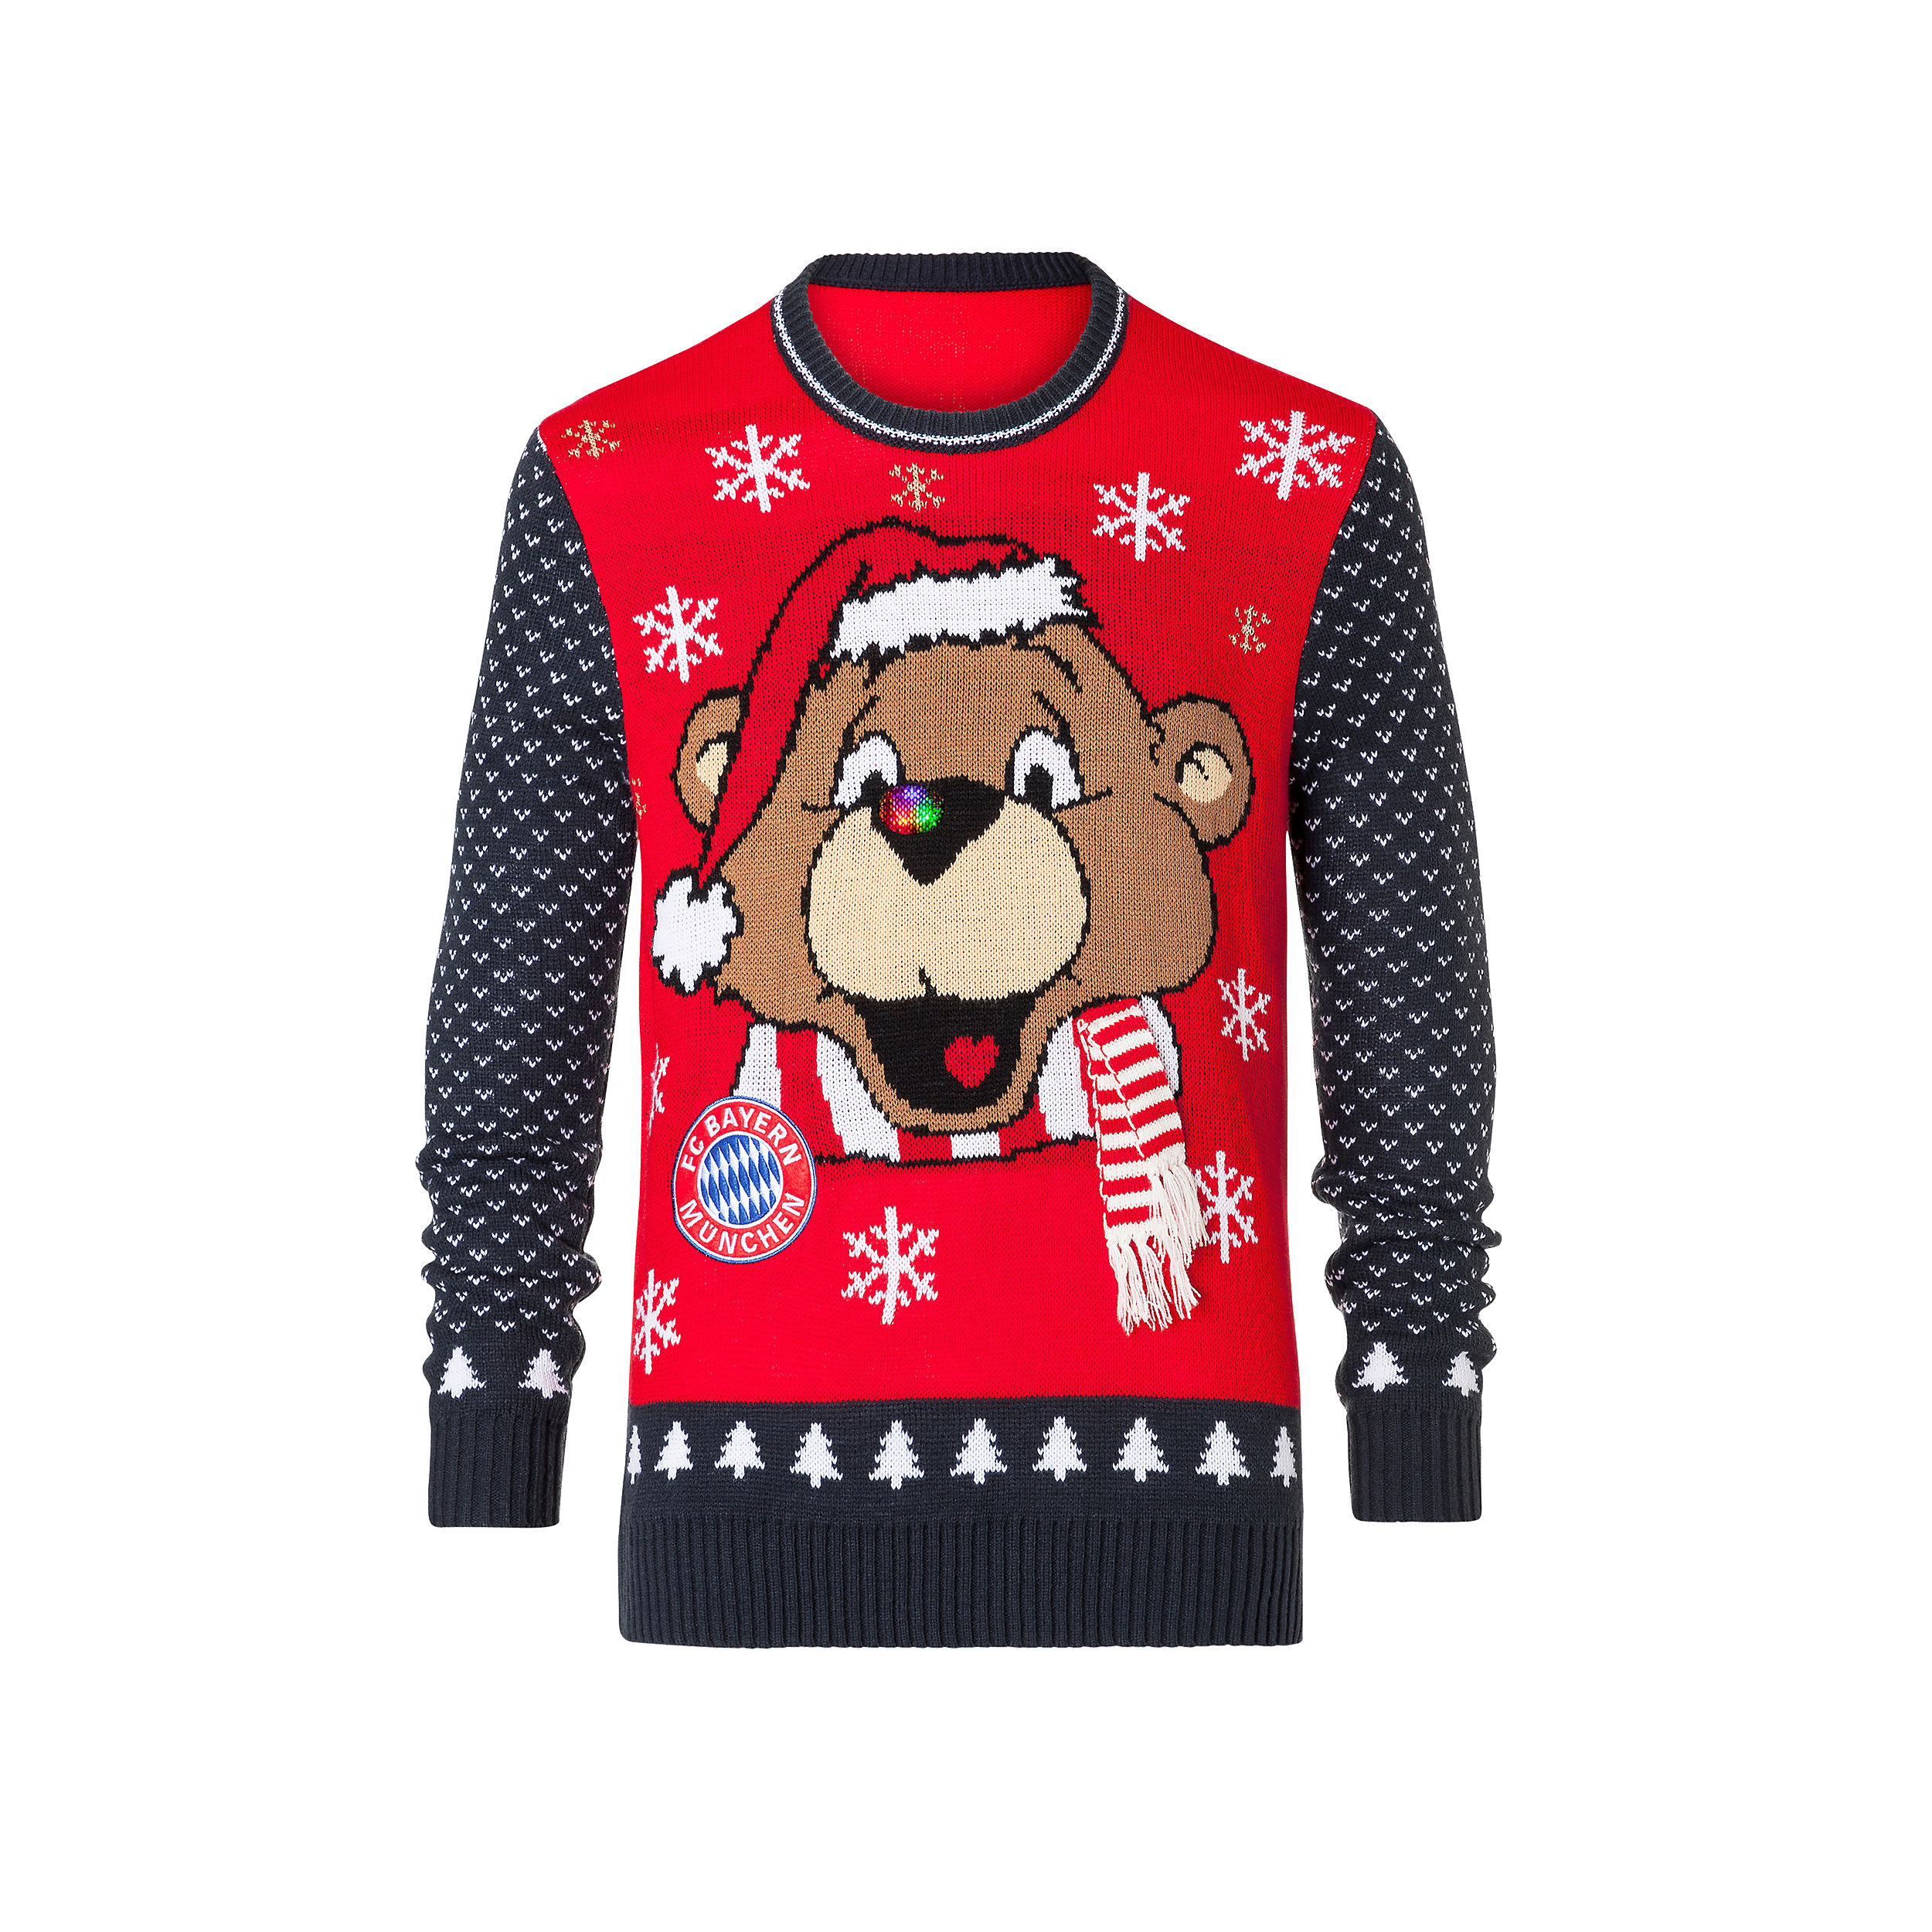 Kids\' Ugly Christmas Sweater | Official FC Bayern Online Store